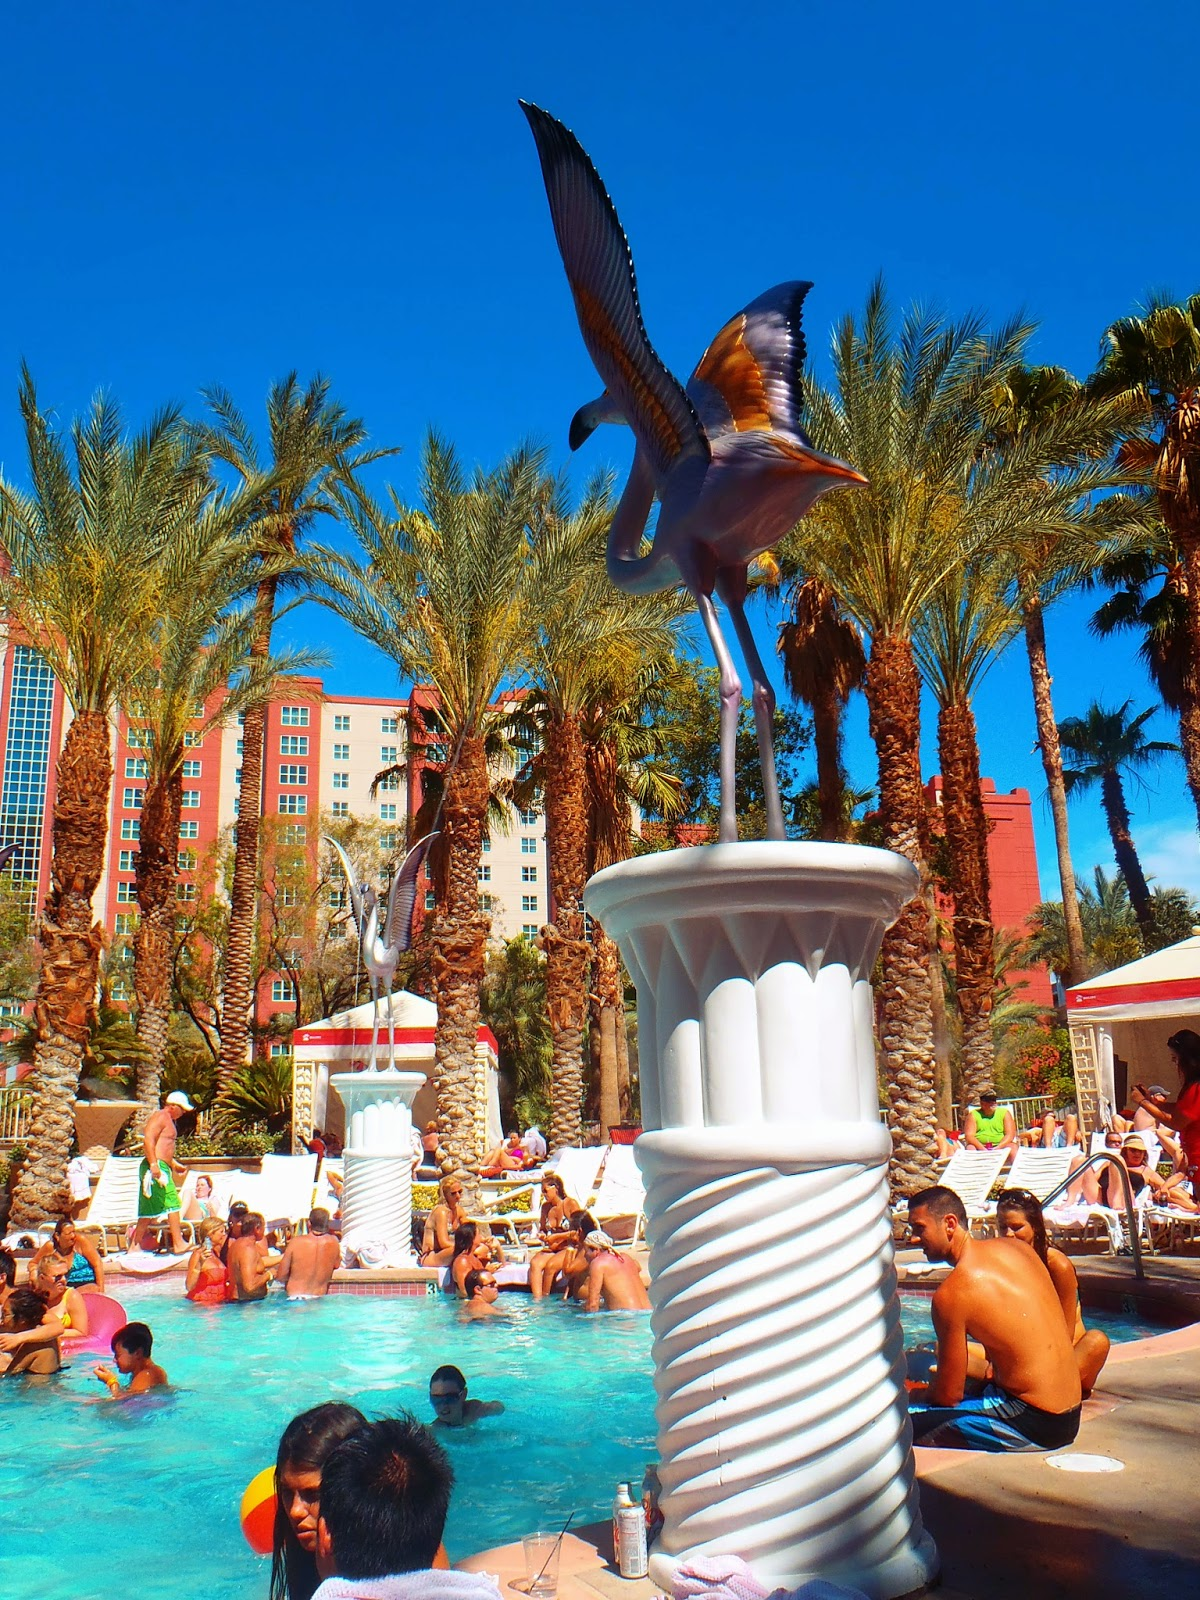 The pool at Flamingo Hotel Las Vegas